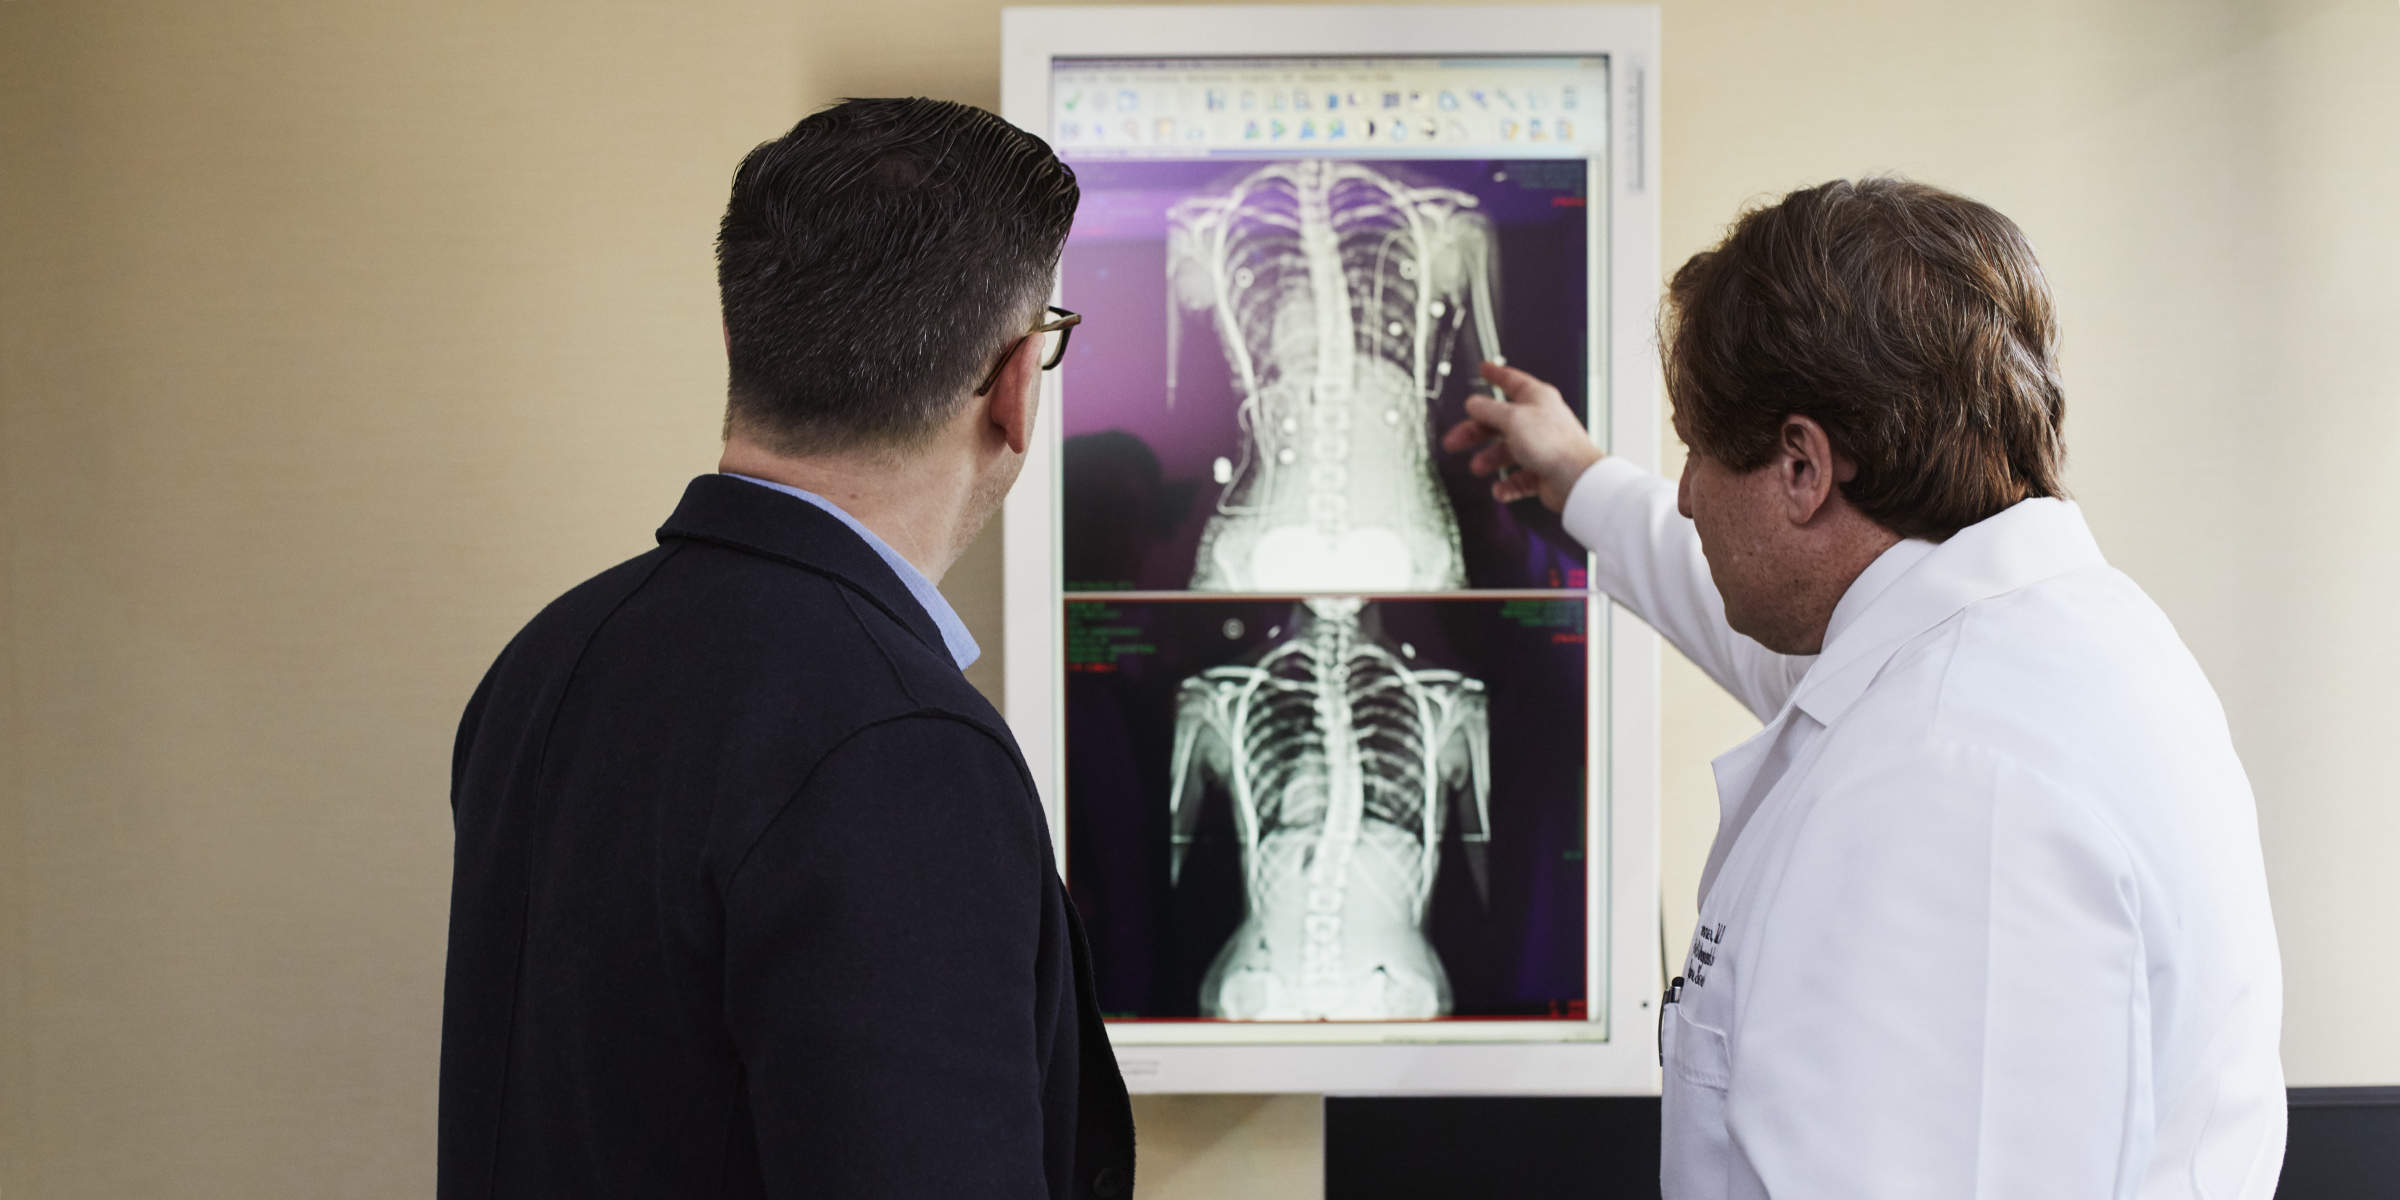 Discussing X-rays to maintain patient relationships